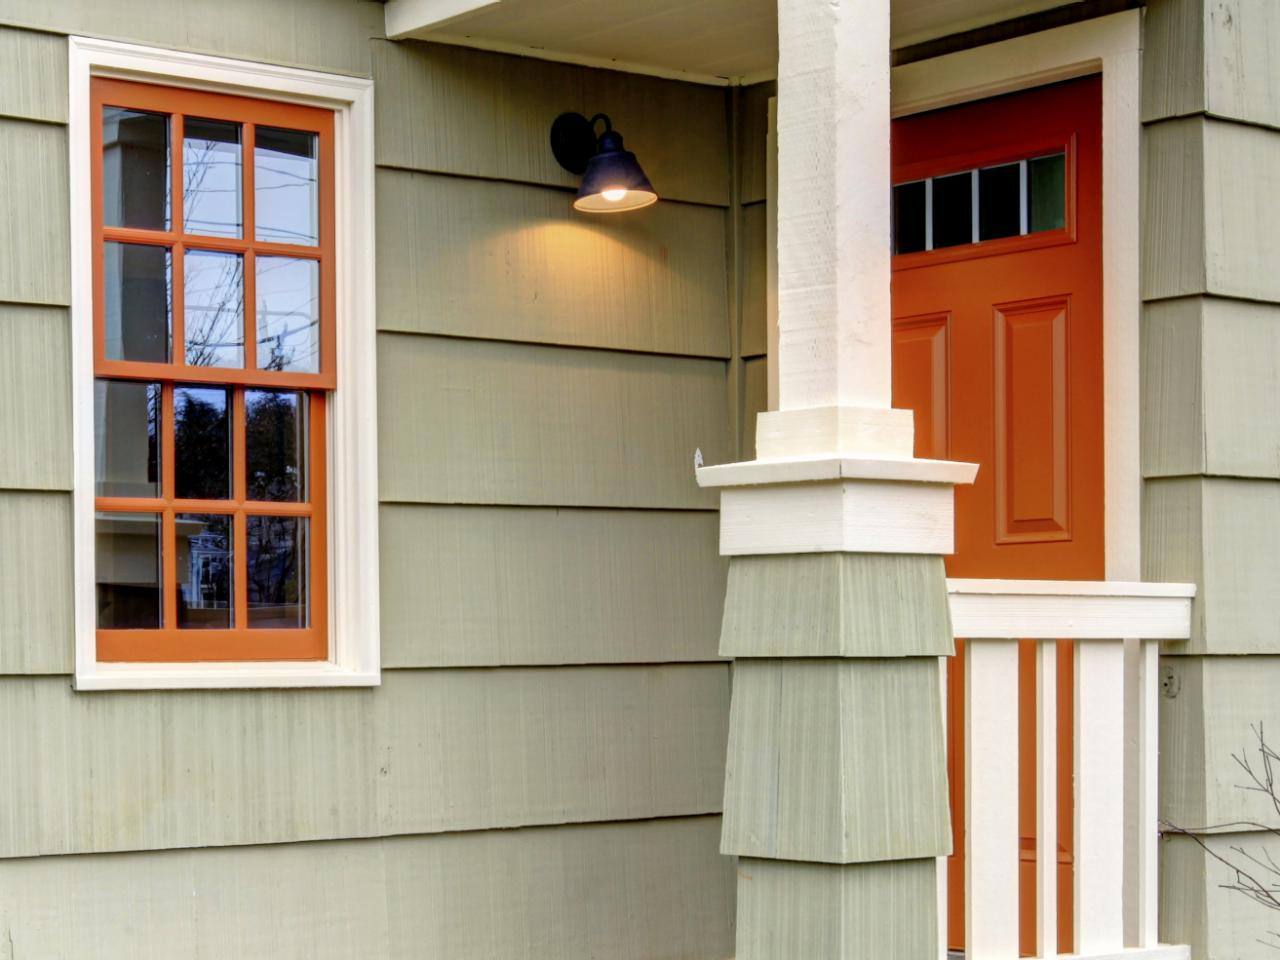 Craftsman exterior window trim - Related To Windows